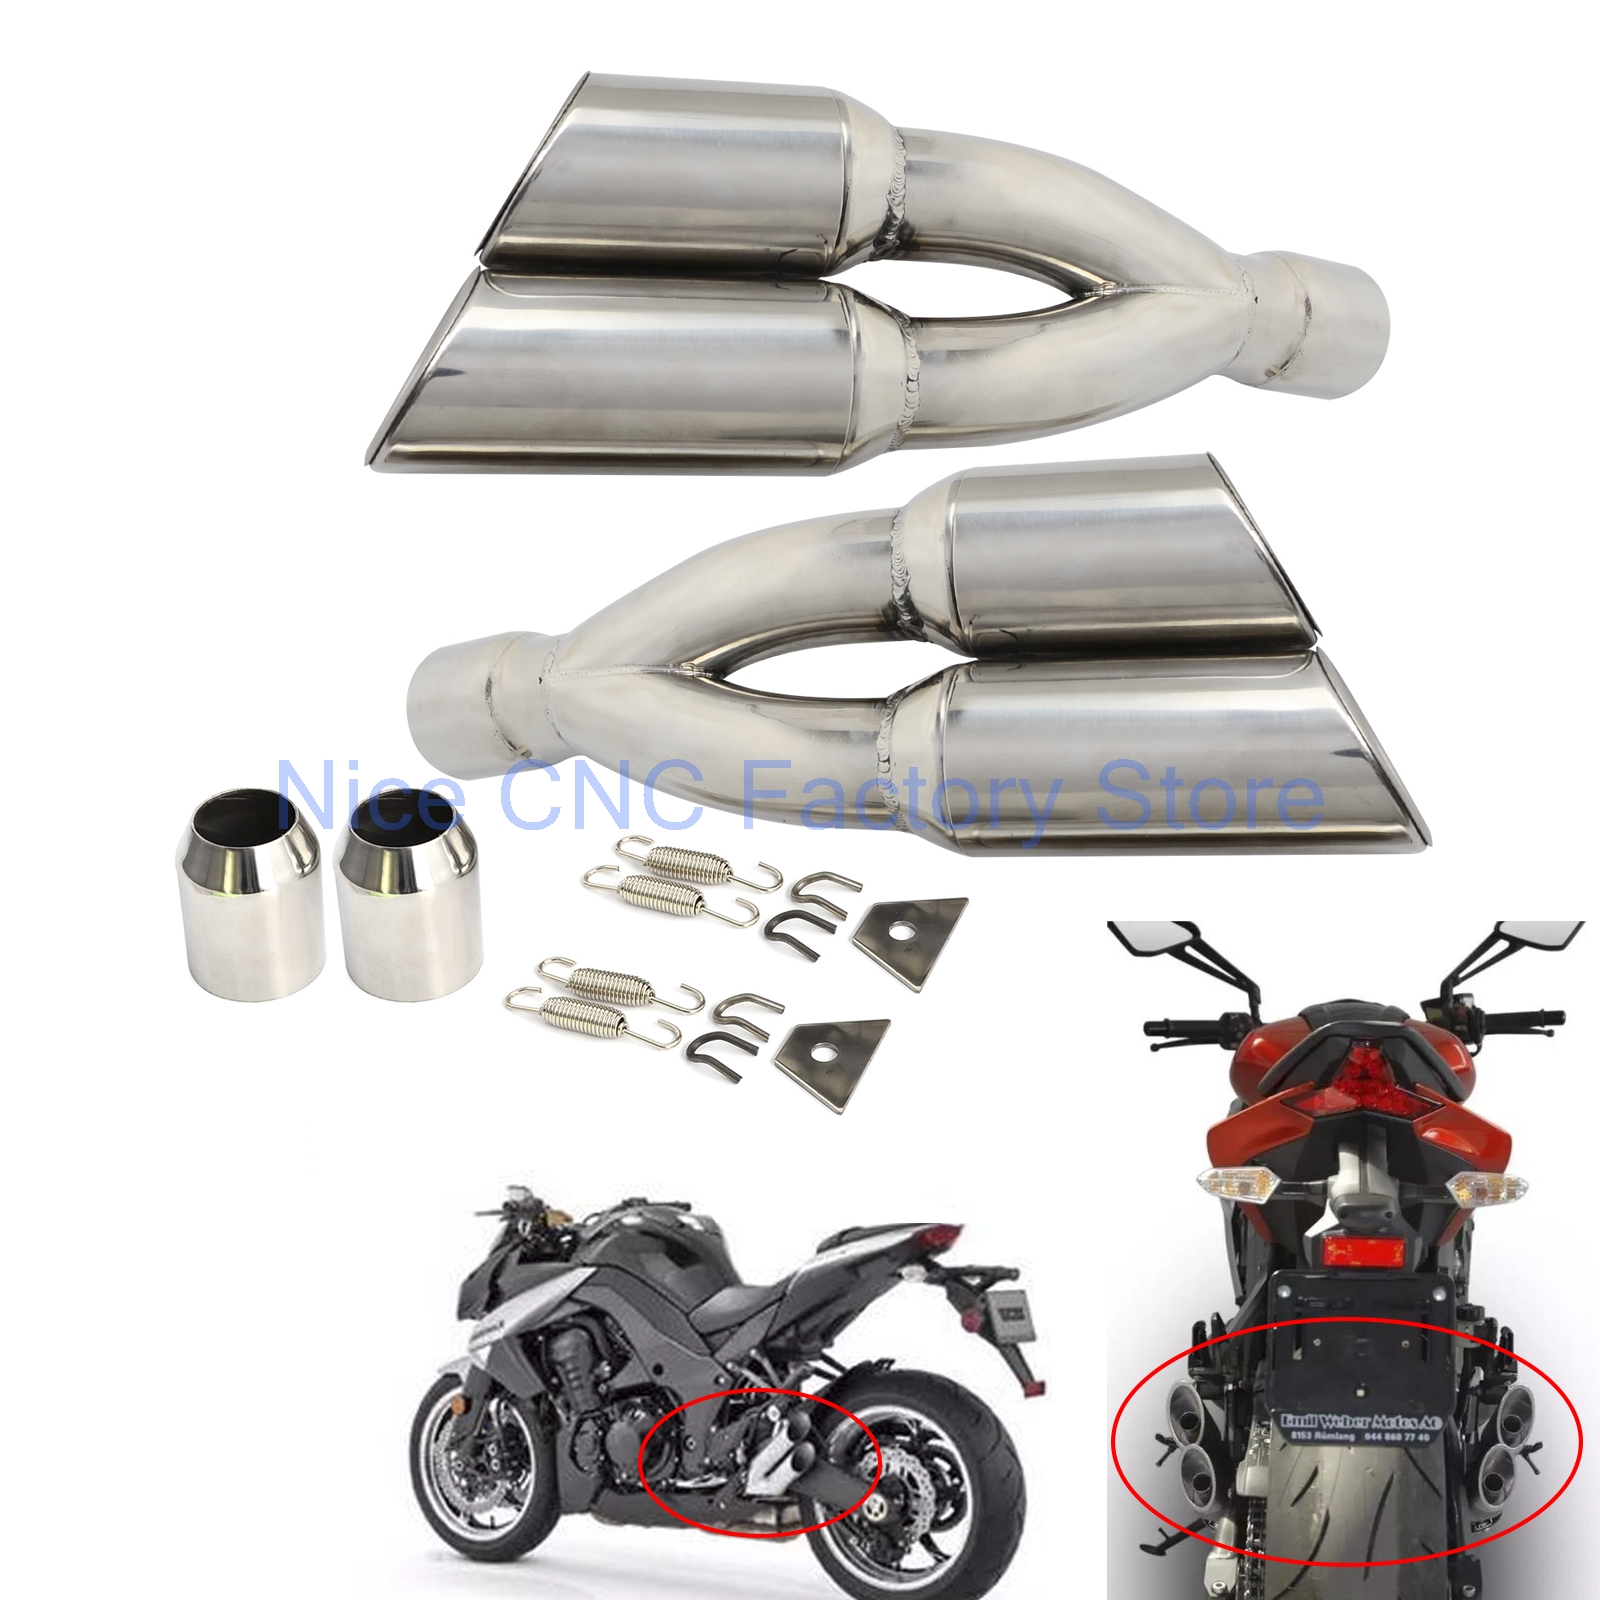 38-51MM Slip-On Universal Dual Exhaust Muffler Vent Pipe Slip On For Motorcycle Dirt Bike Street Bike Scooter ATV Quad And More сортеры nina логический шар клоун